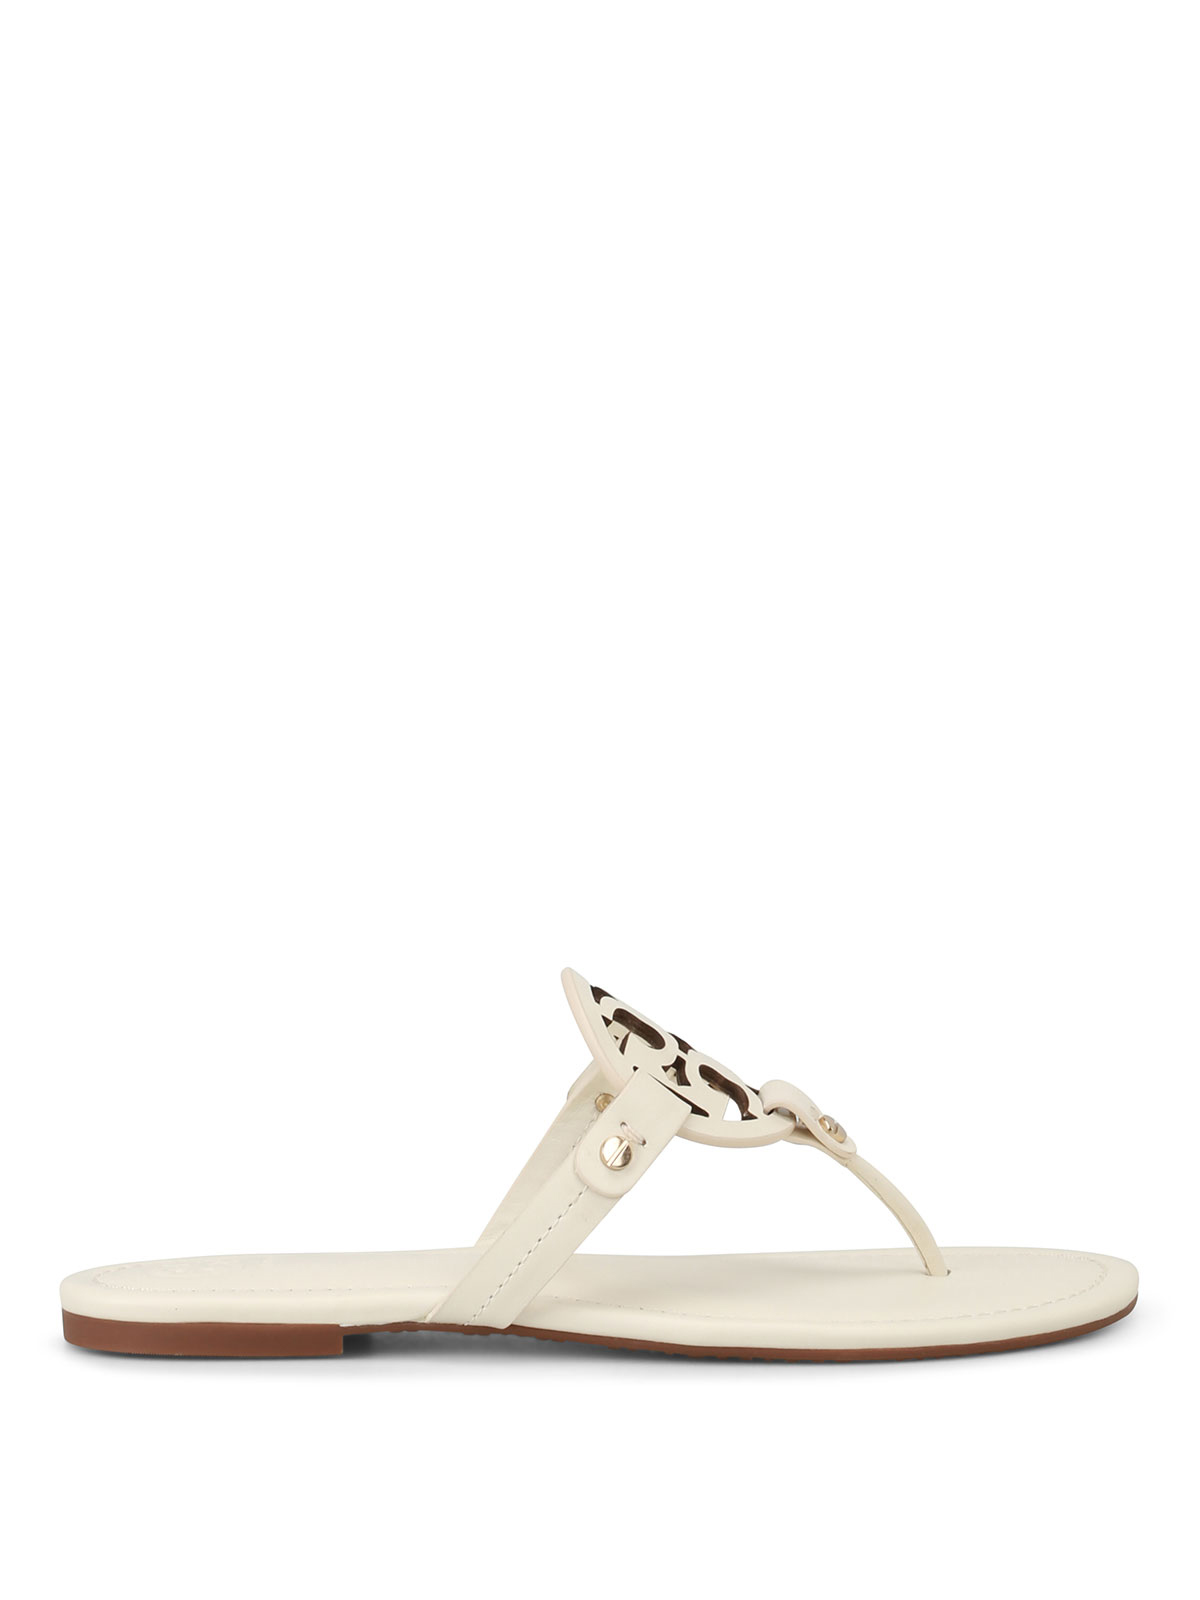 5667338c3a704 Tory Burch - Miller leather thong sandals - sandals - 36446 120